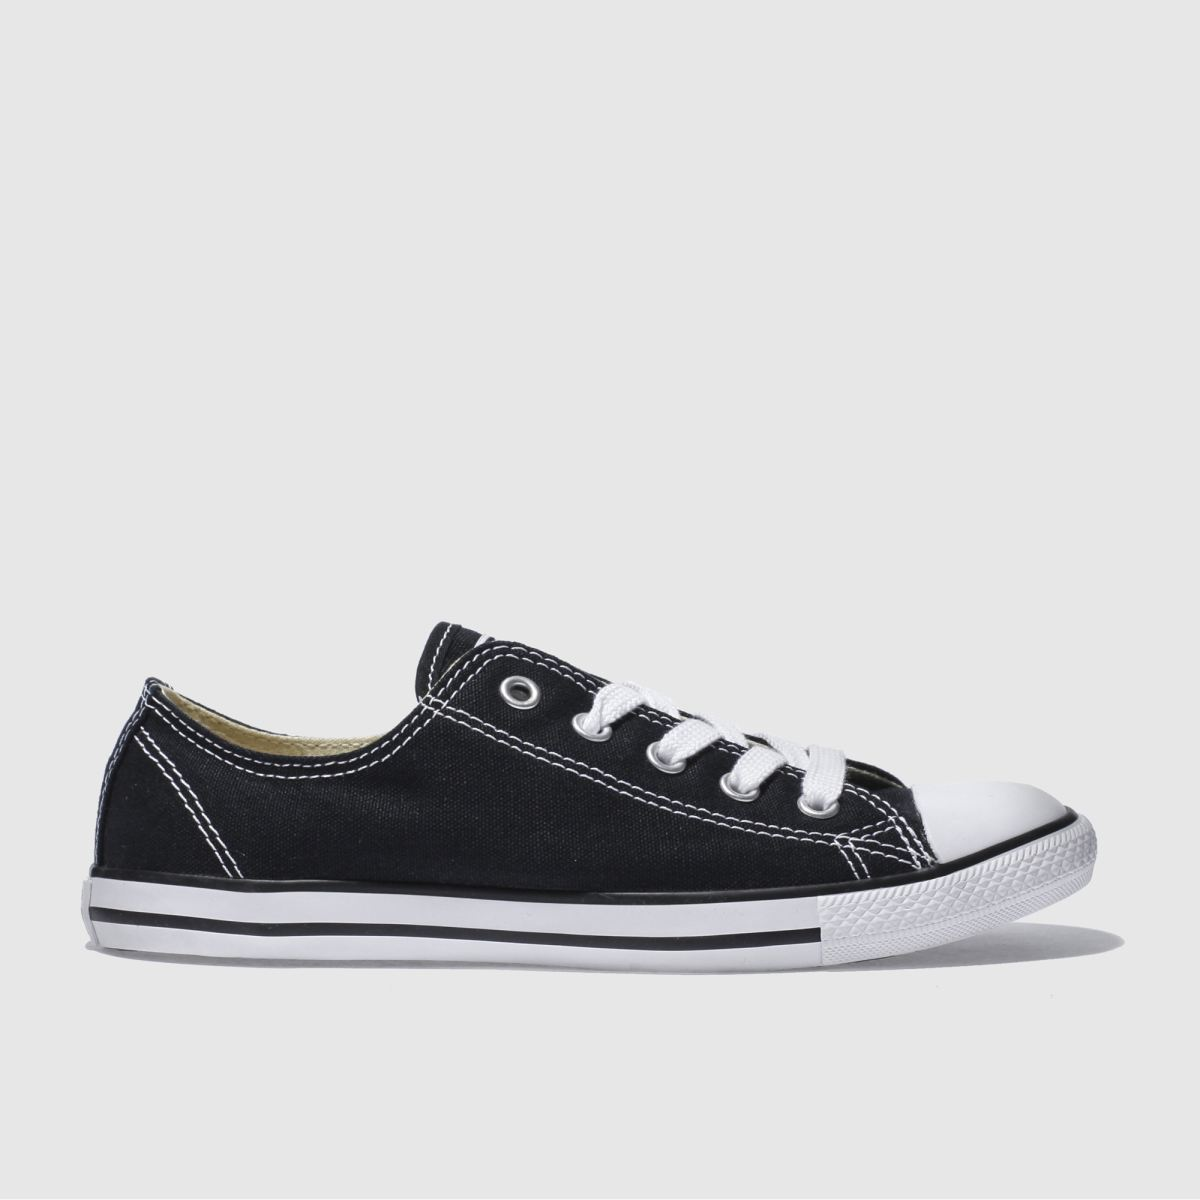 converse black all star dainty canvas trainers